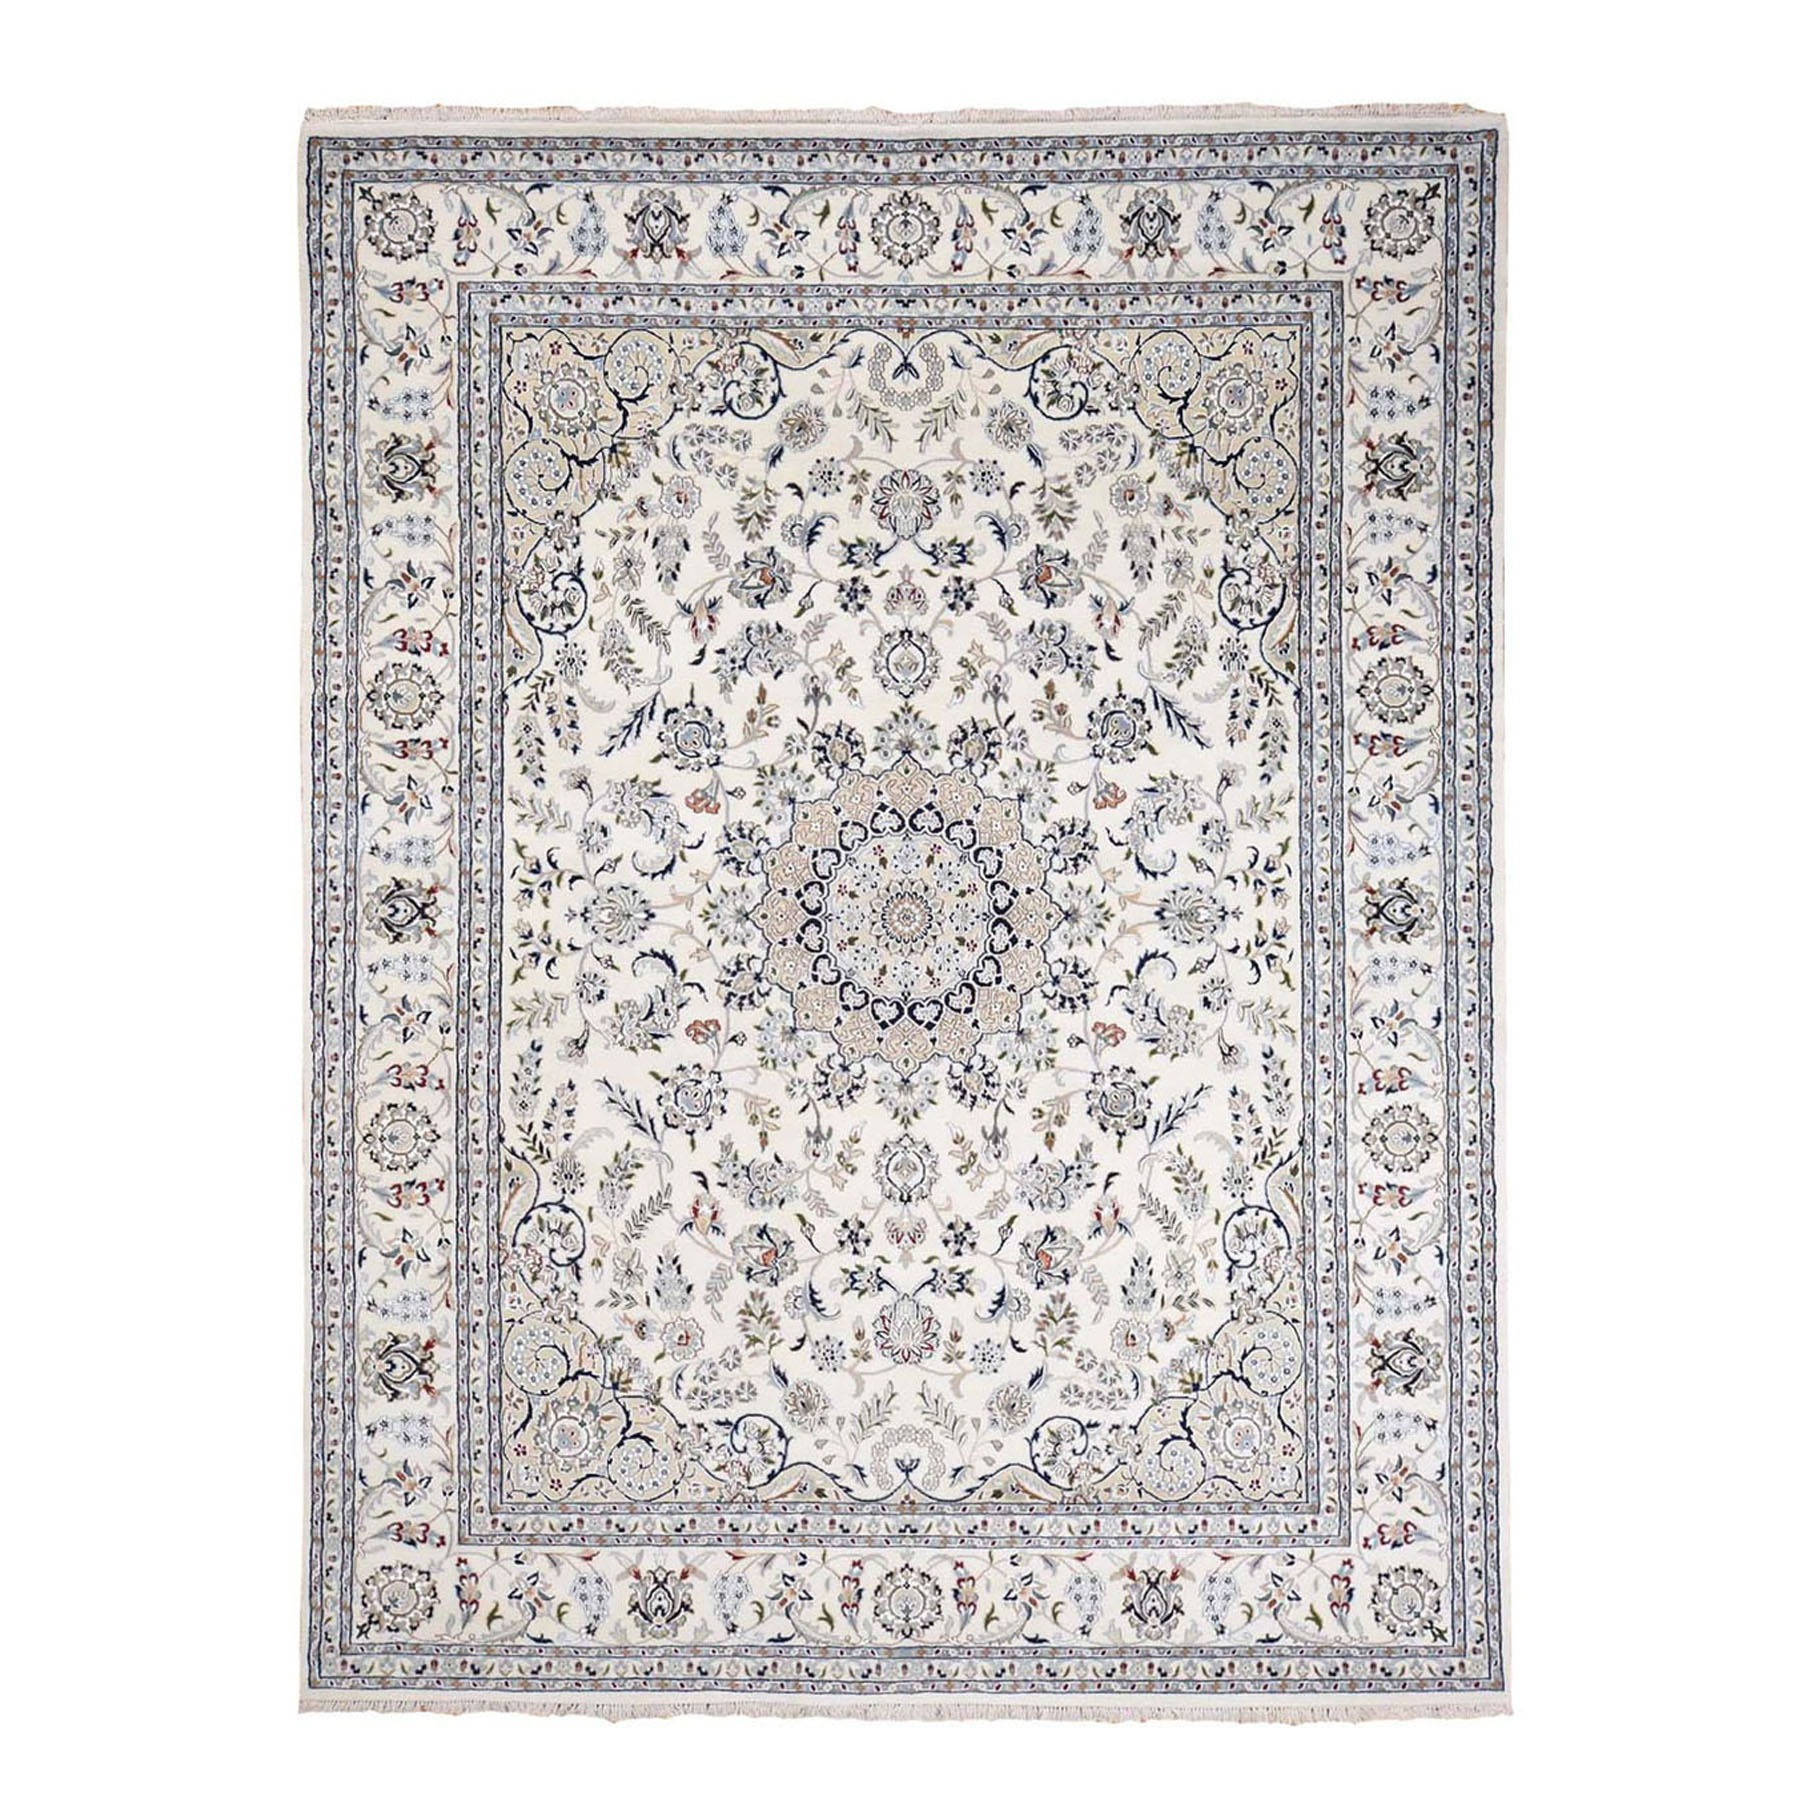 8'x10' Wool And Silk 250 KPSI Ivory Nain Hand Woven Oriental Rug